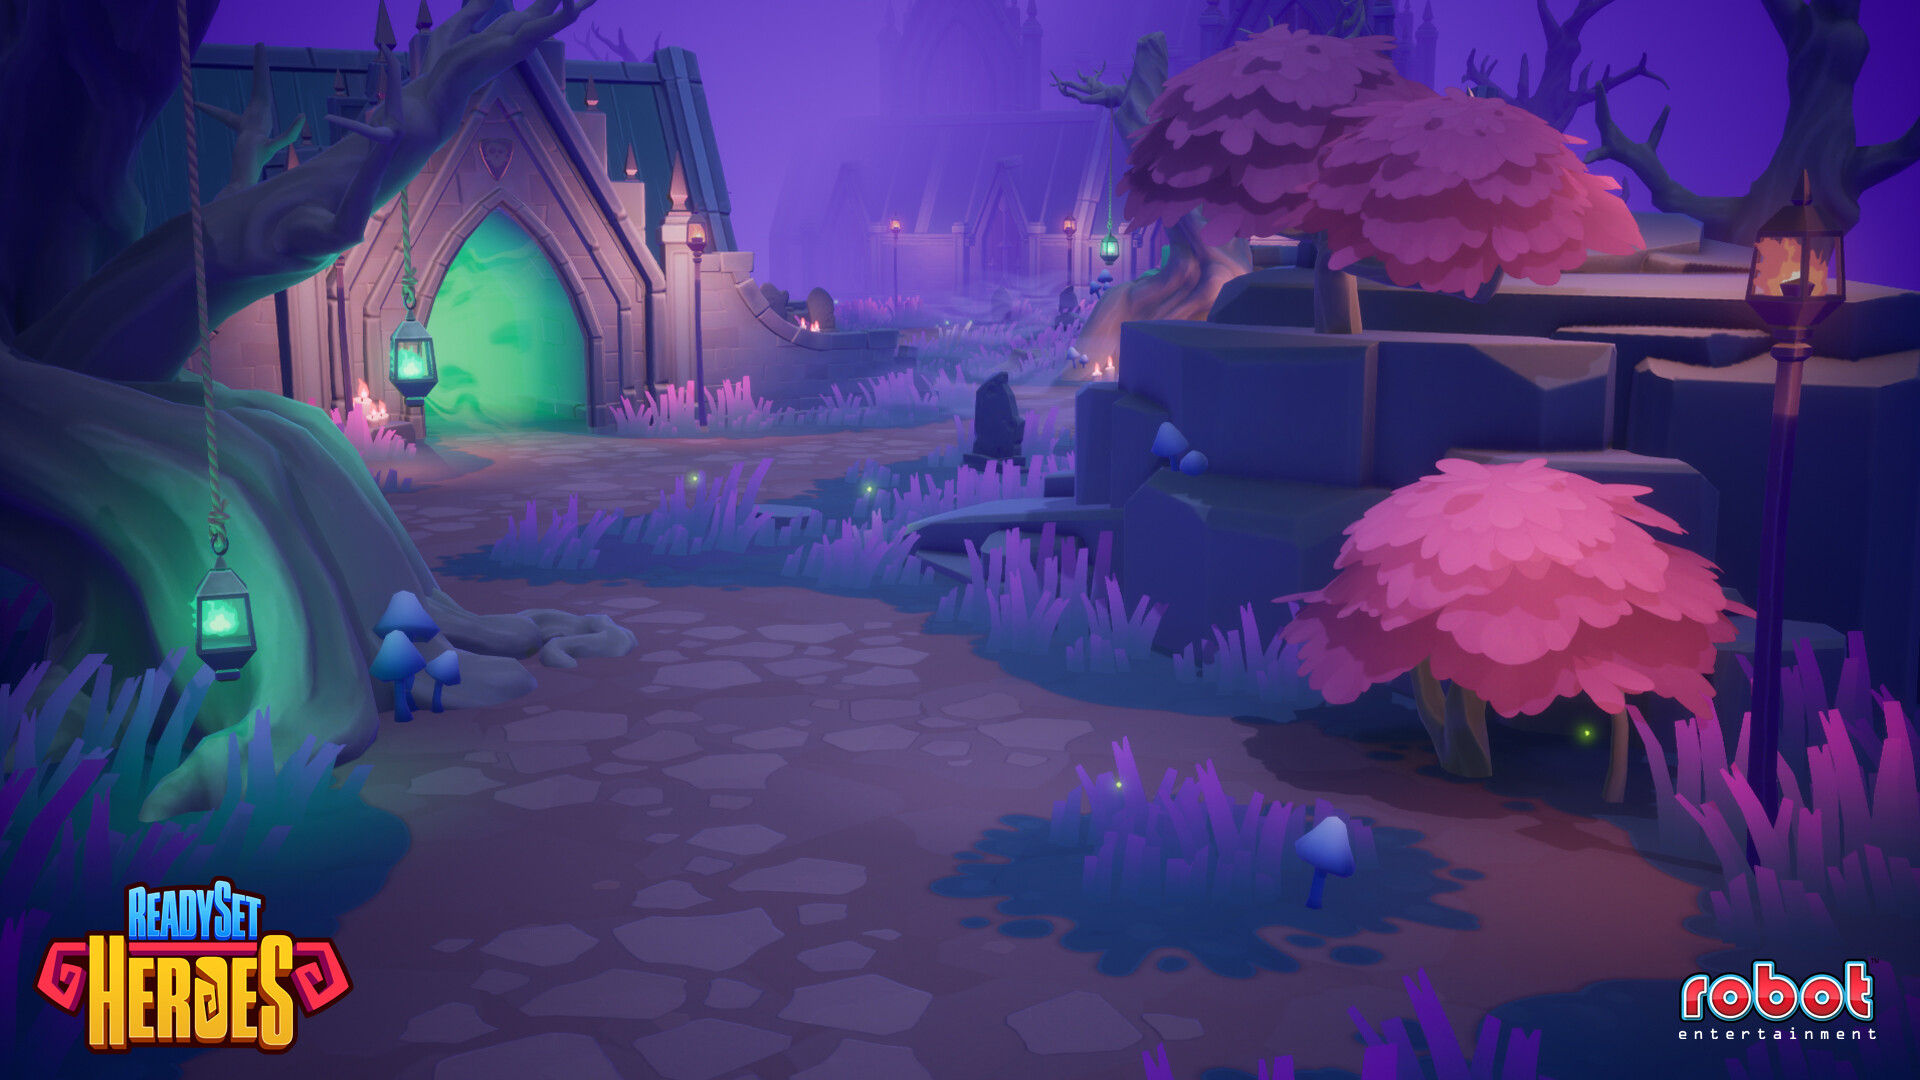 Graveyard art set - Created terrain materials, decals, foliage assets, and built out levels.